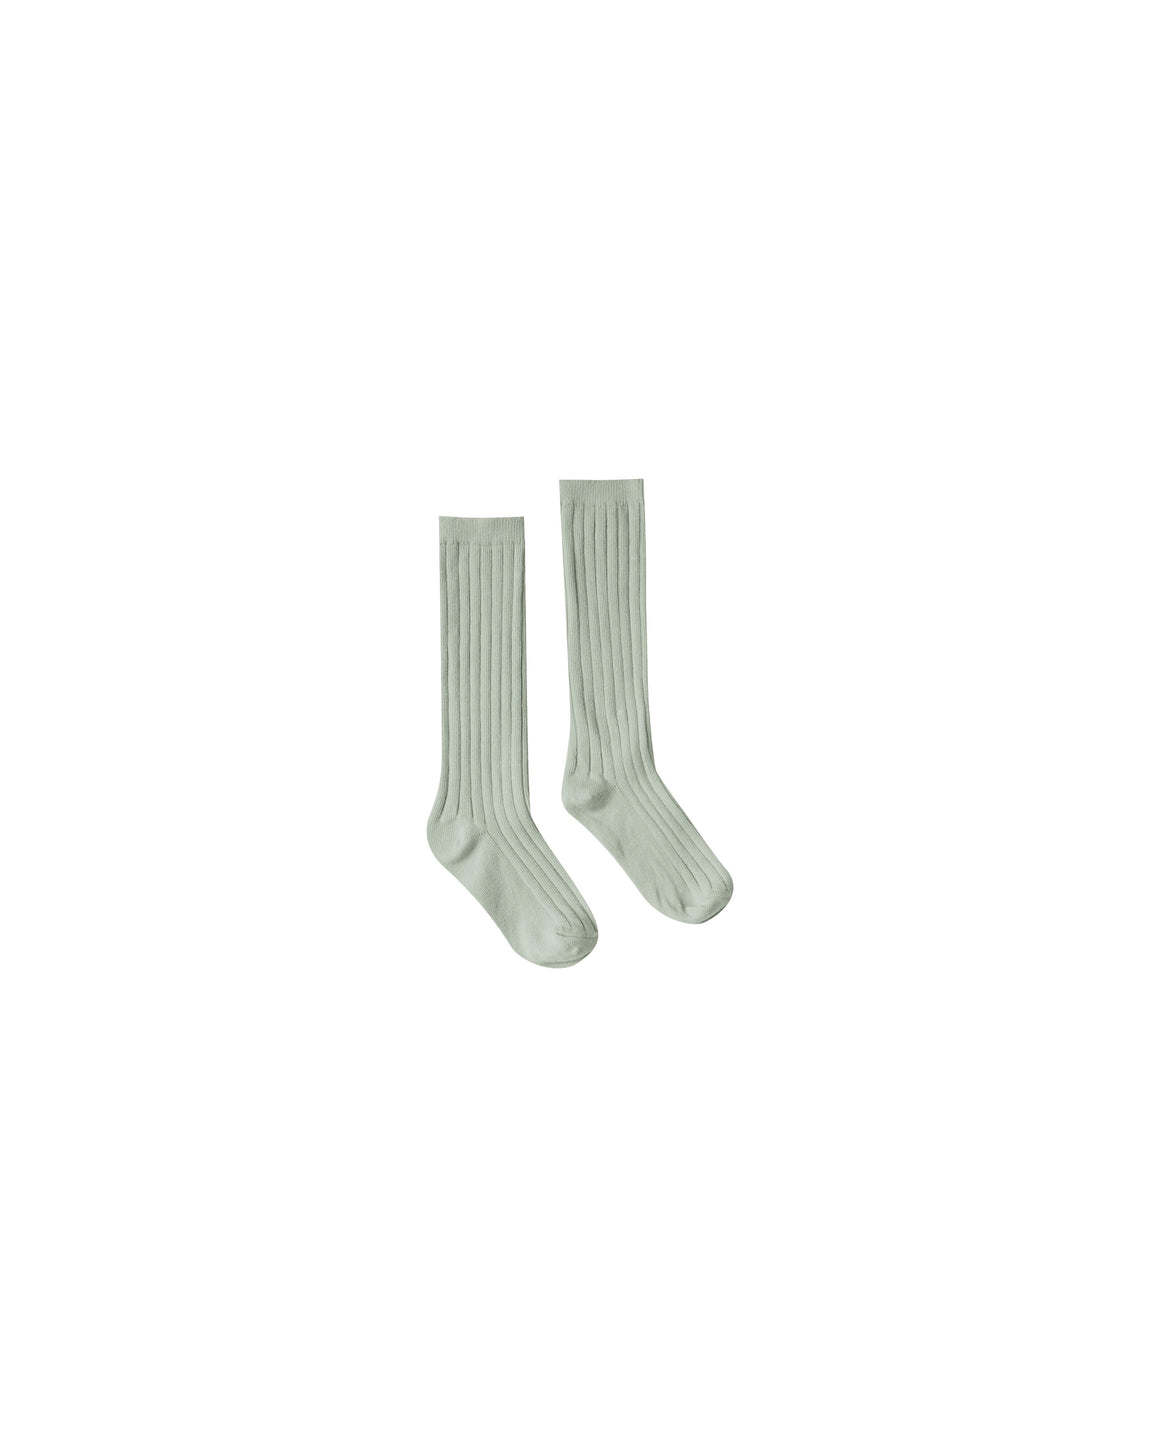 Children's ribbed knee high socks in seafoam green.